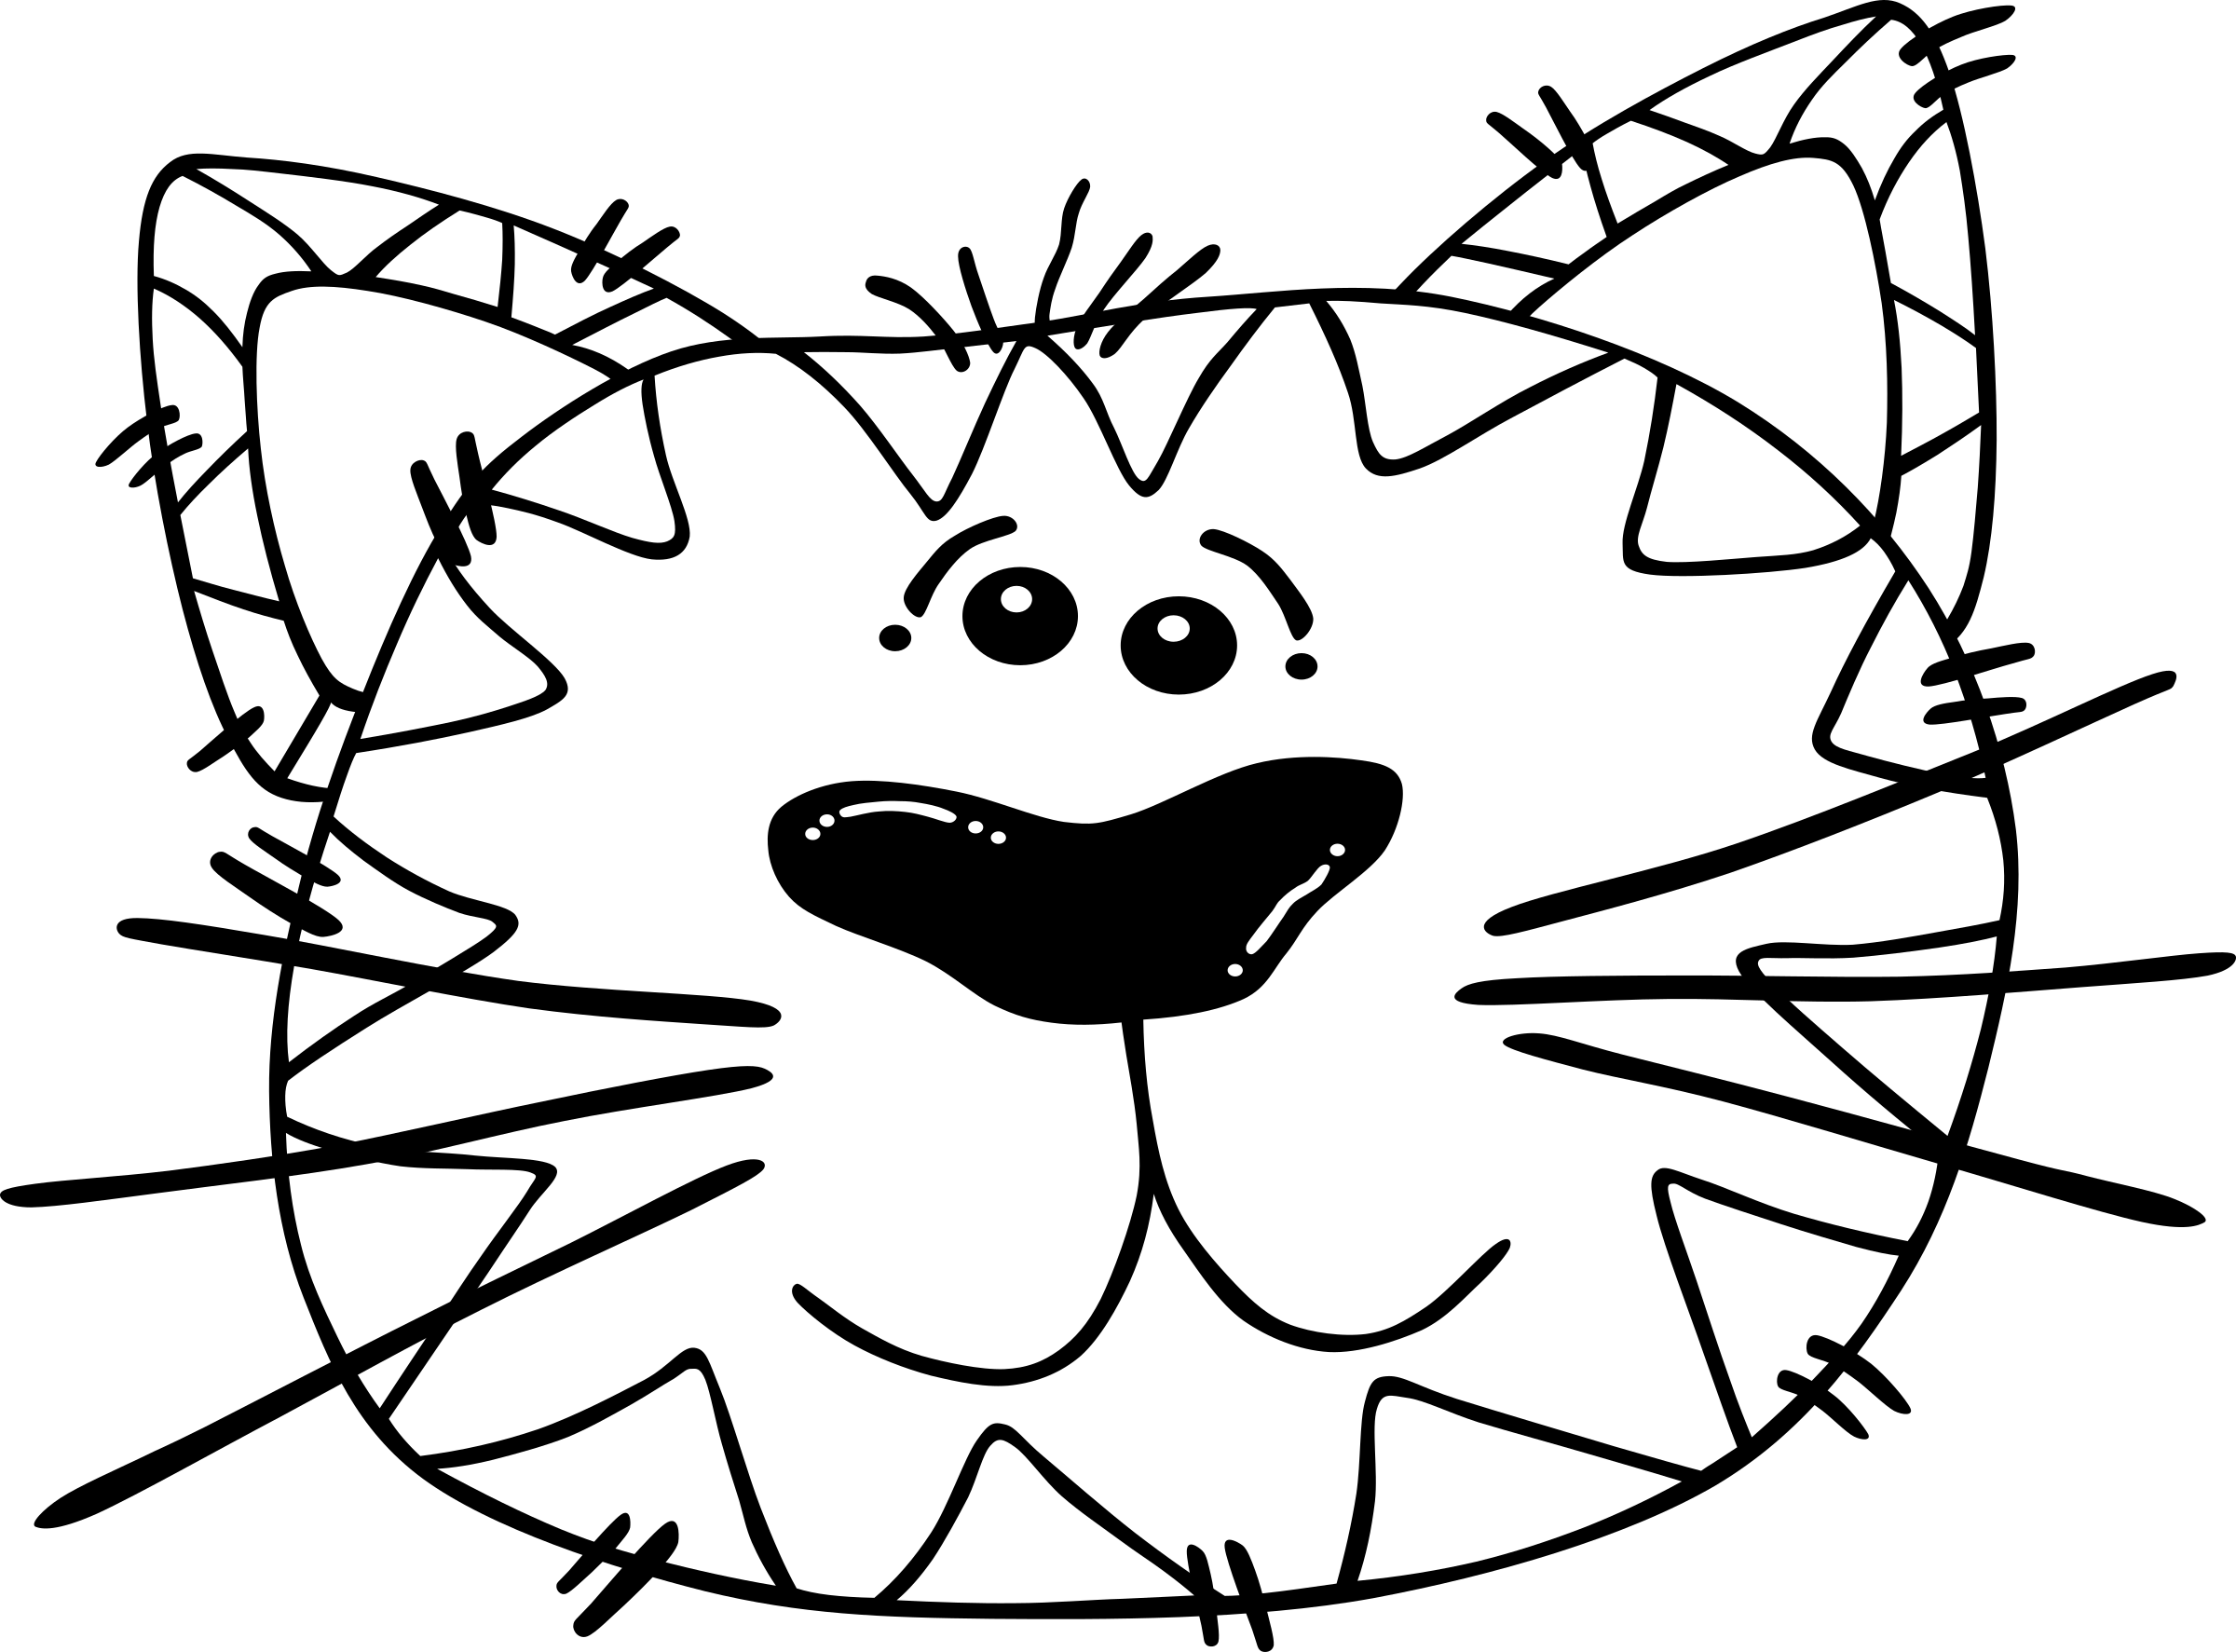 Book with face clipart image royalty free download Clipart - Cartoon Cat Face image royalty free download